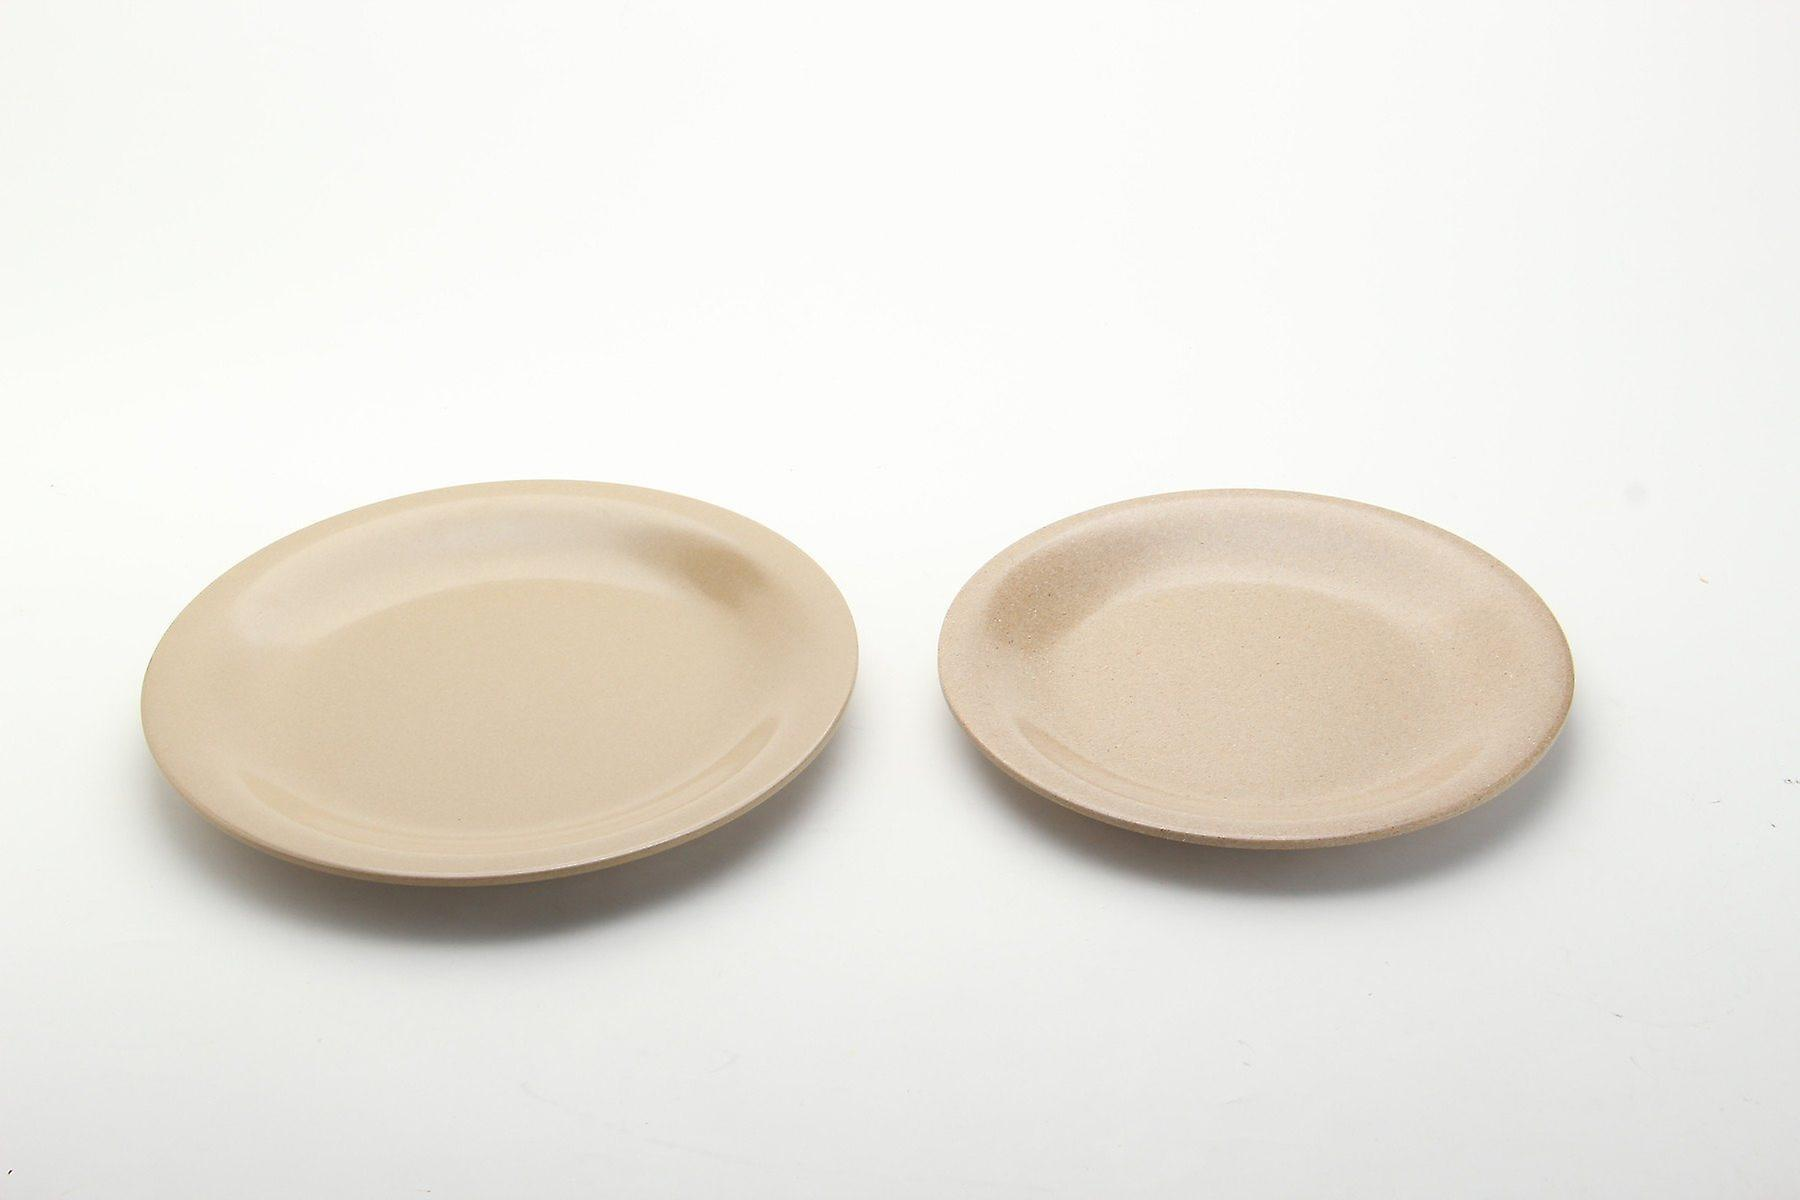 OLPRO Husk Round Plate x 4 Outdoor Tableware Microwave and Freezer Safe